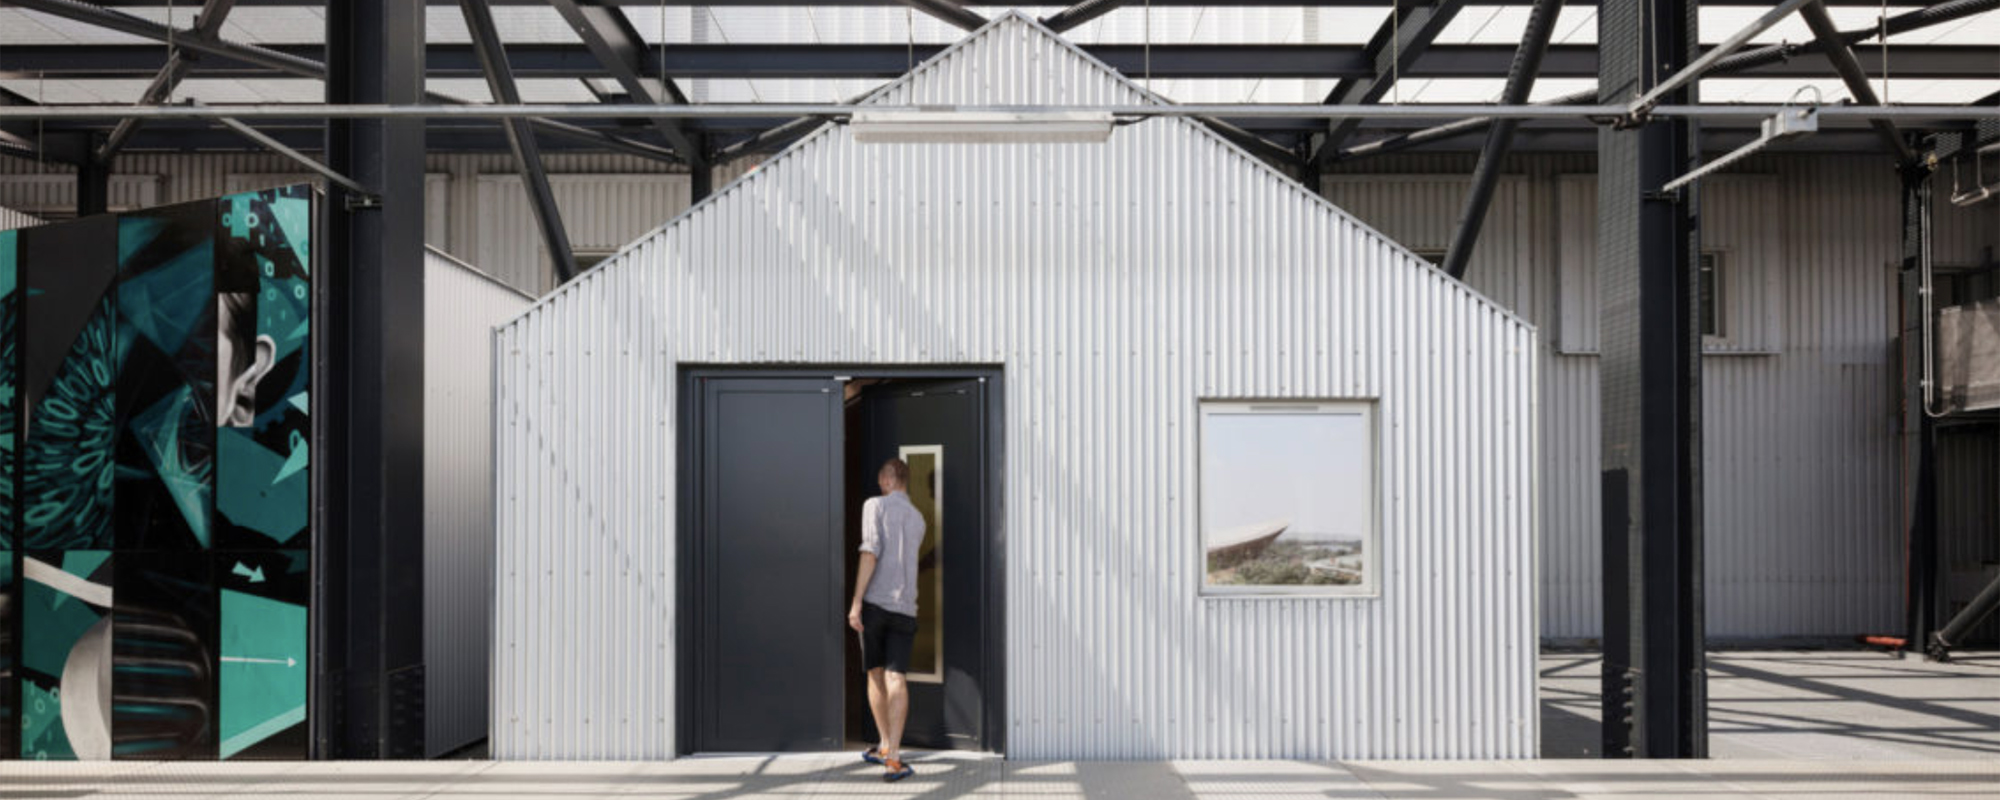 Small studio huts were included to attract businesses pushed out of Hackney Wick